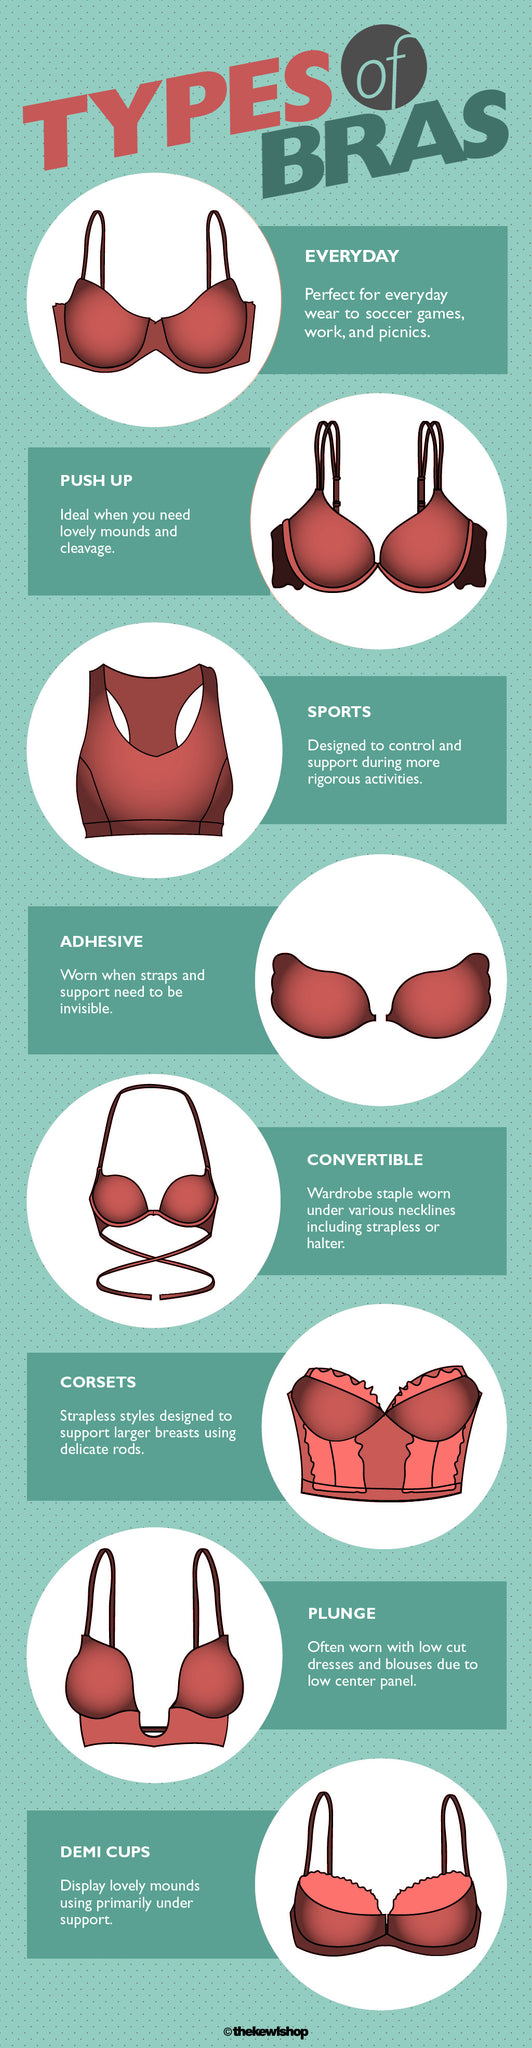 types of bra infographic